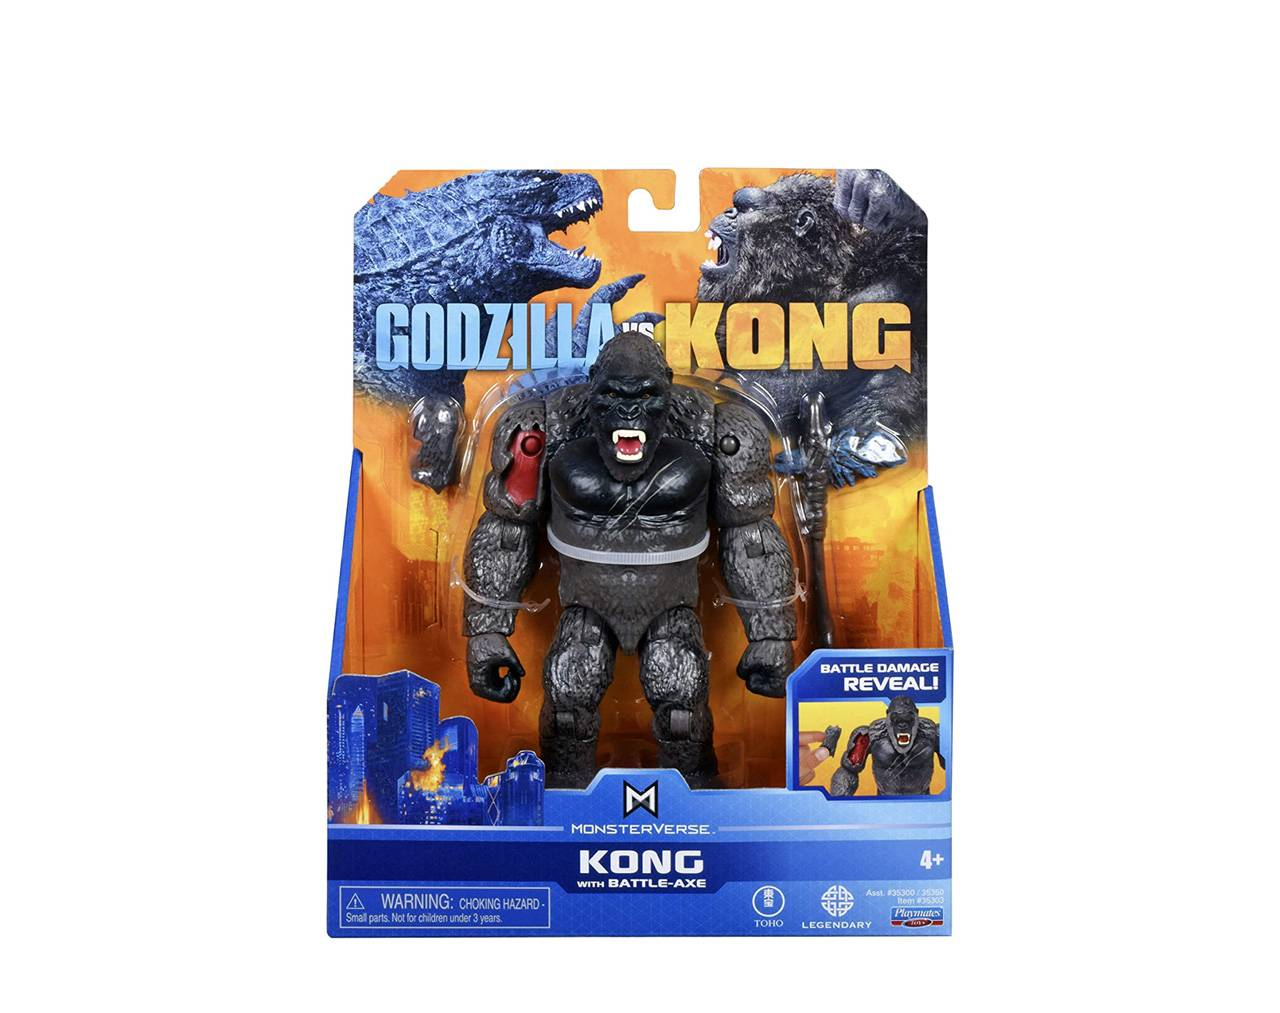 Kong with Battle Axe Playmates Toys